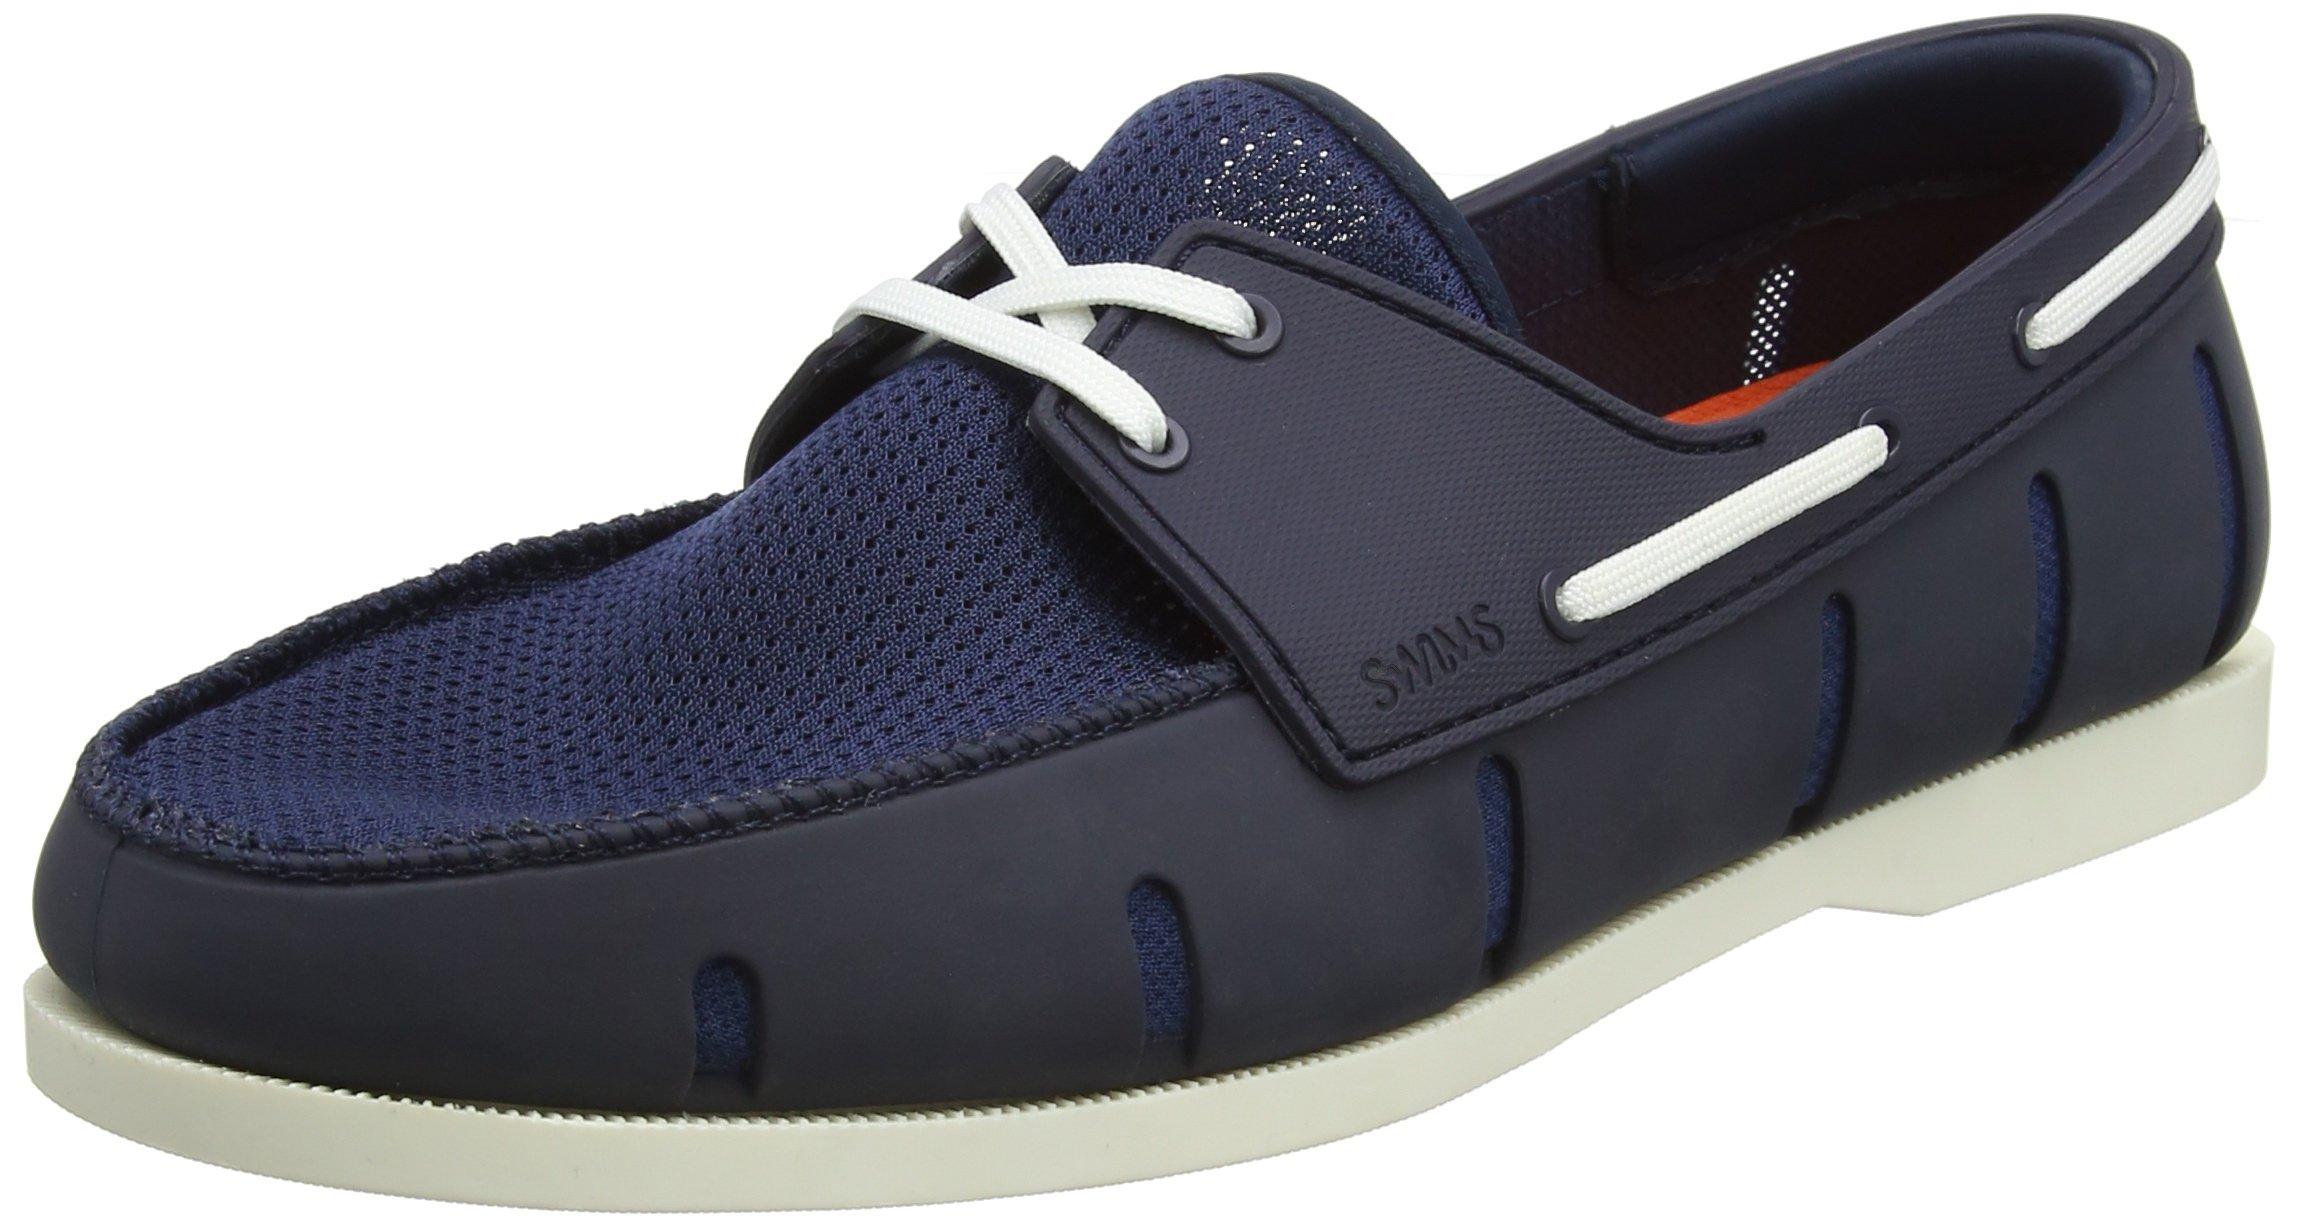 SWIMS Men's Boat Loafers, Navy/White, 7 D(M) US